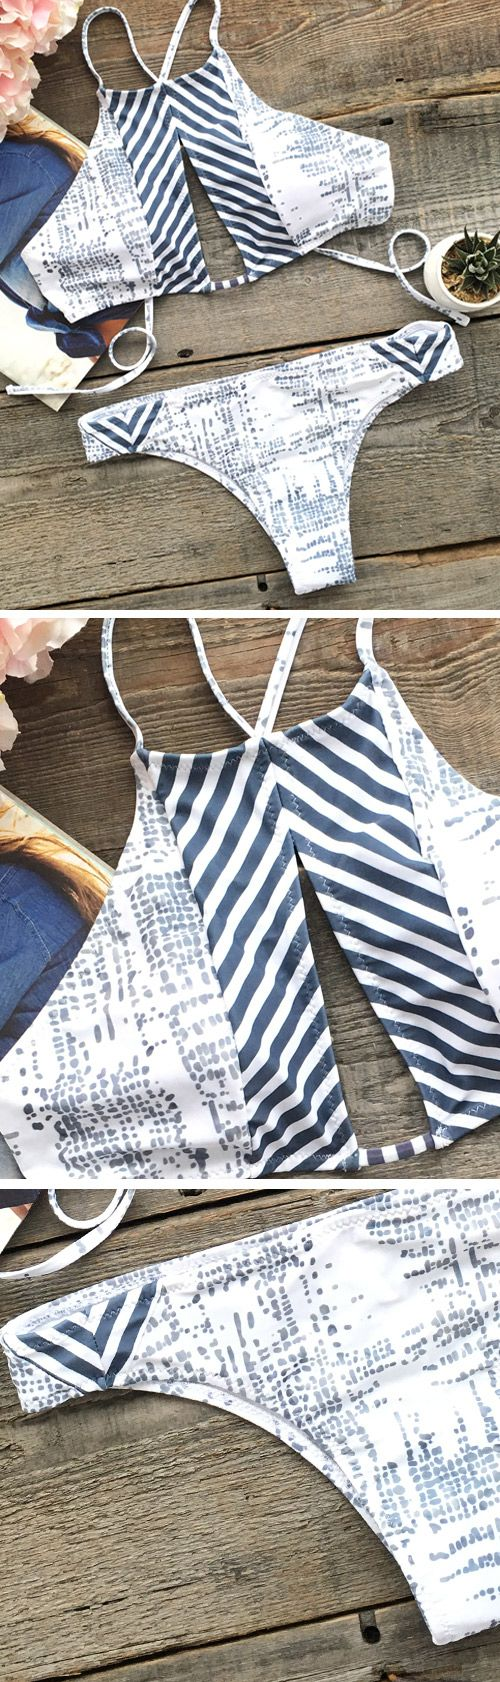 Summer beach time is on, get that tan skin by some perfect swimsuits! Get lost in the stripe and impression printing. Put on your sunglasses and lay on the Southern California beach. You will be a shining star.